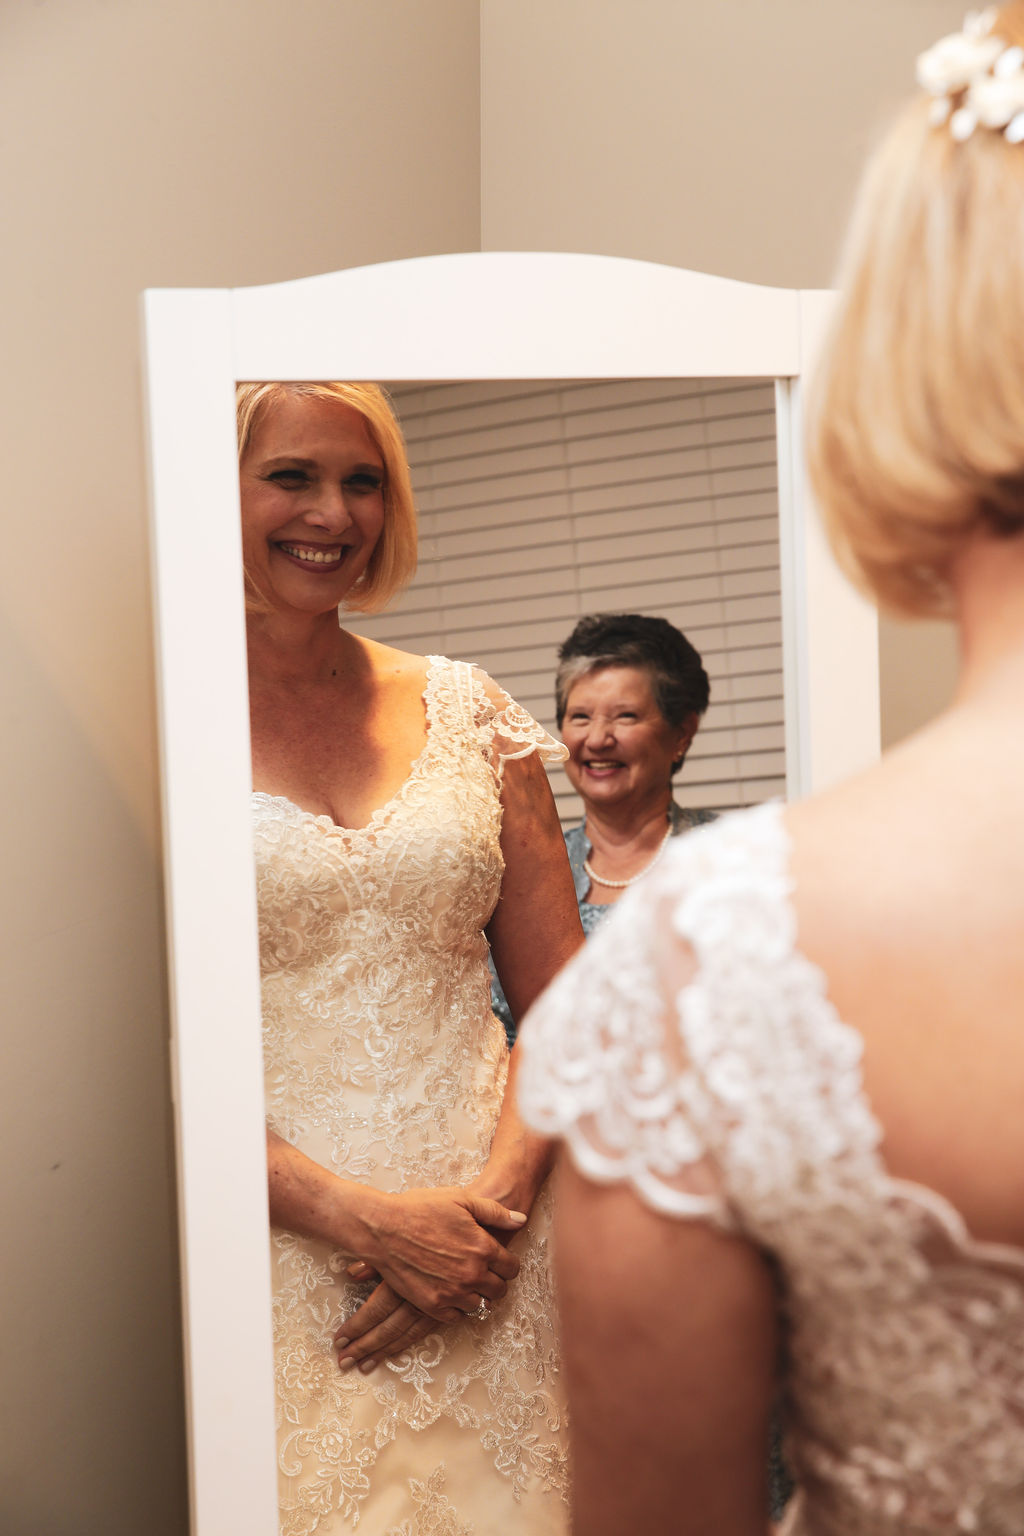 Bride prepares for her wedding at Belk Chapel before her wedding ceremony coordinated by Magnificent Moments Weddings